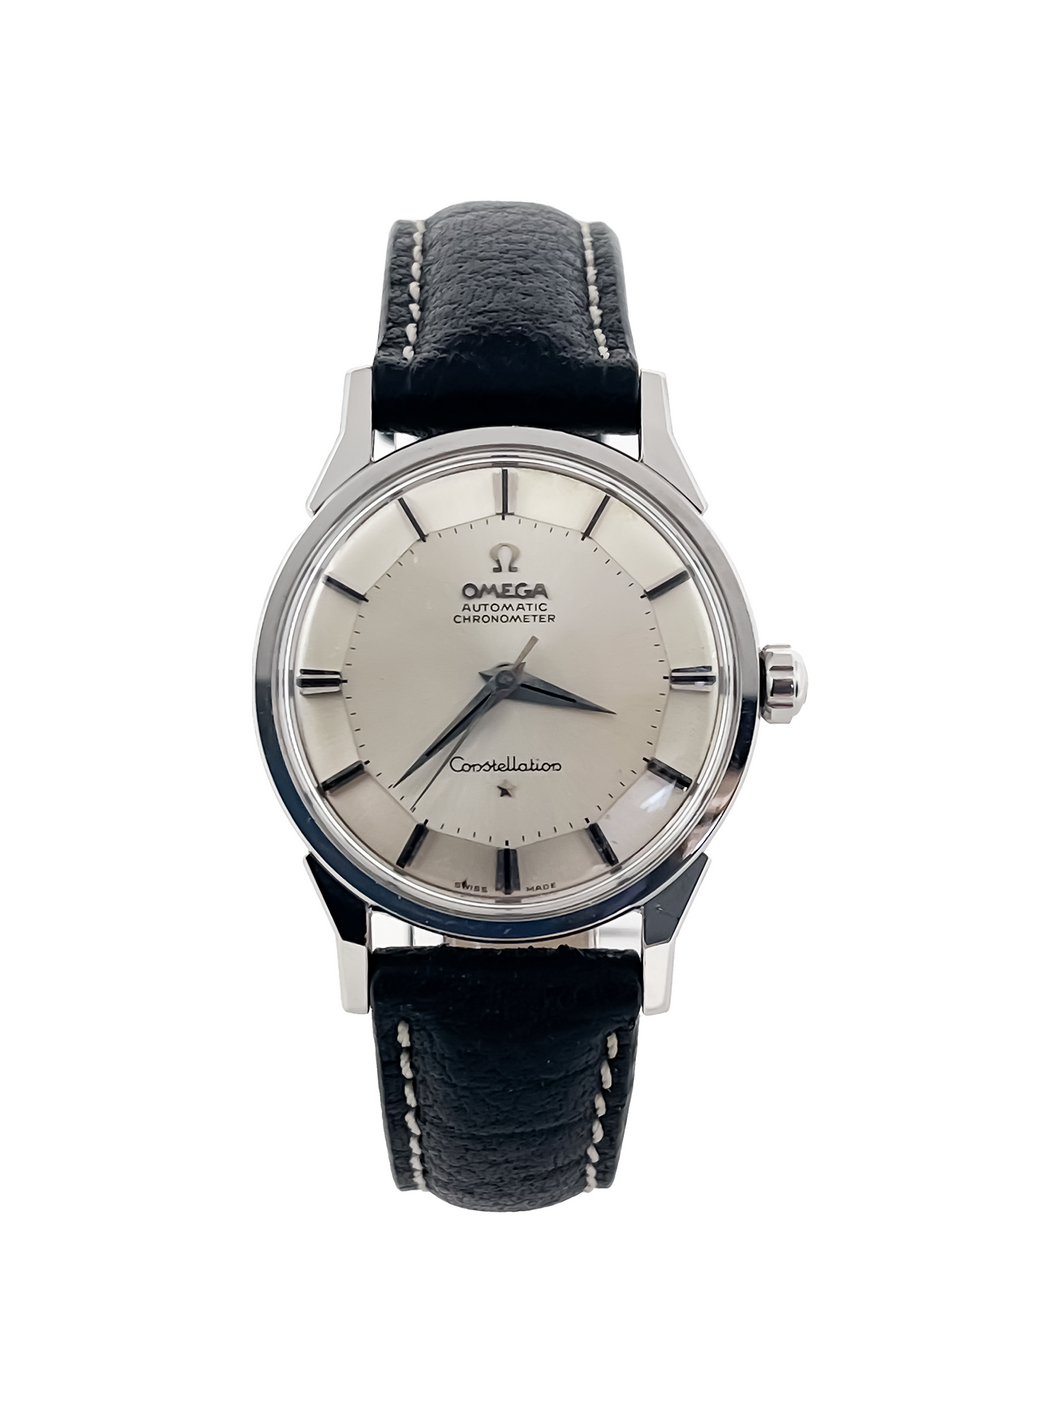 1962 Vintage Omega Constellation CK14900